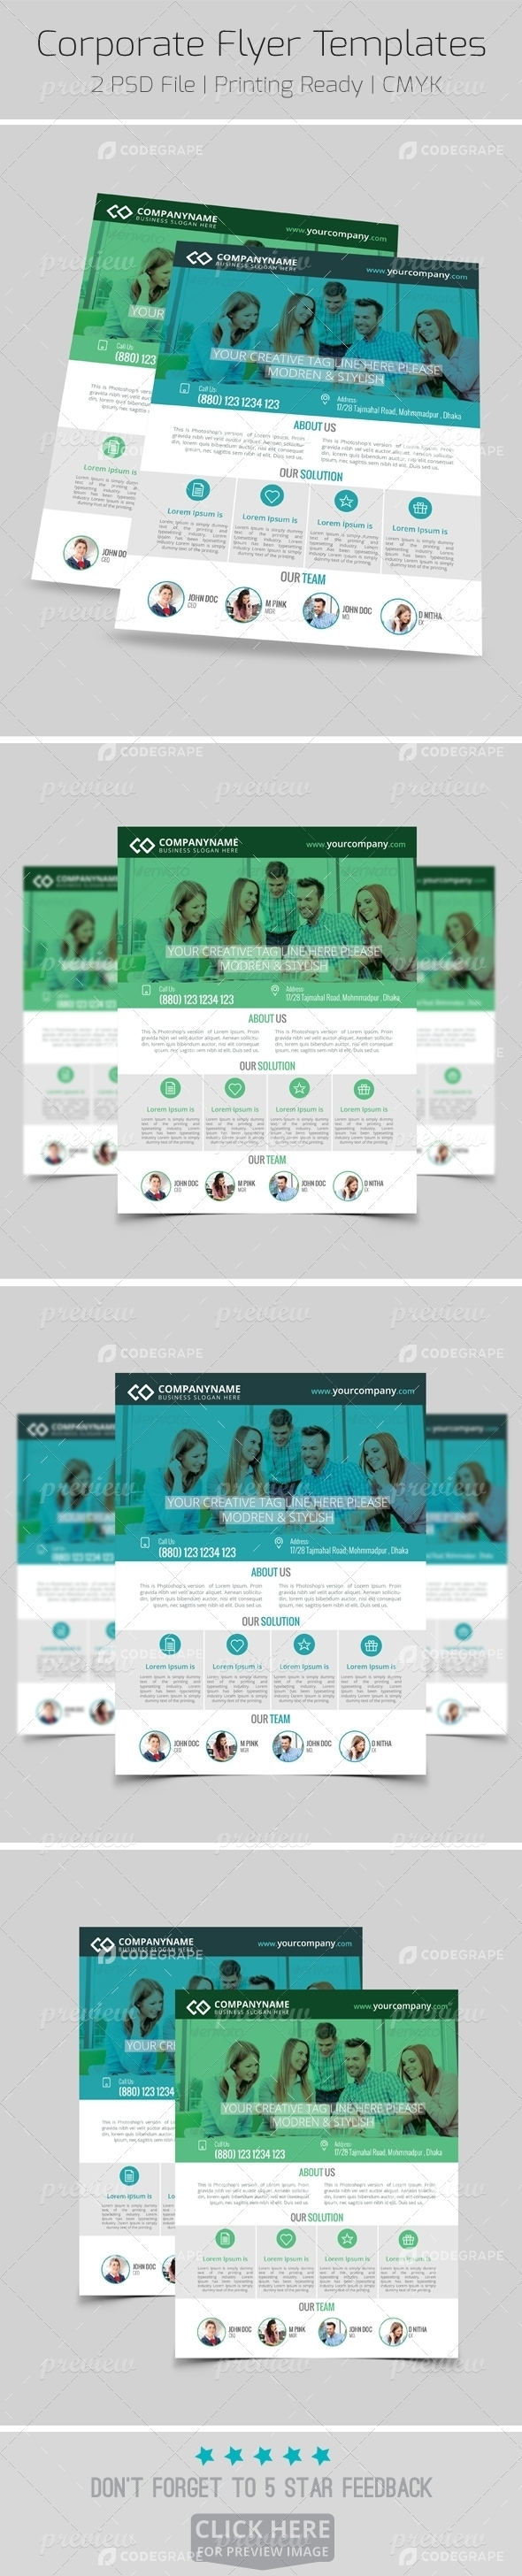 Modern Corporate Flyer Templates 2